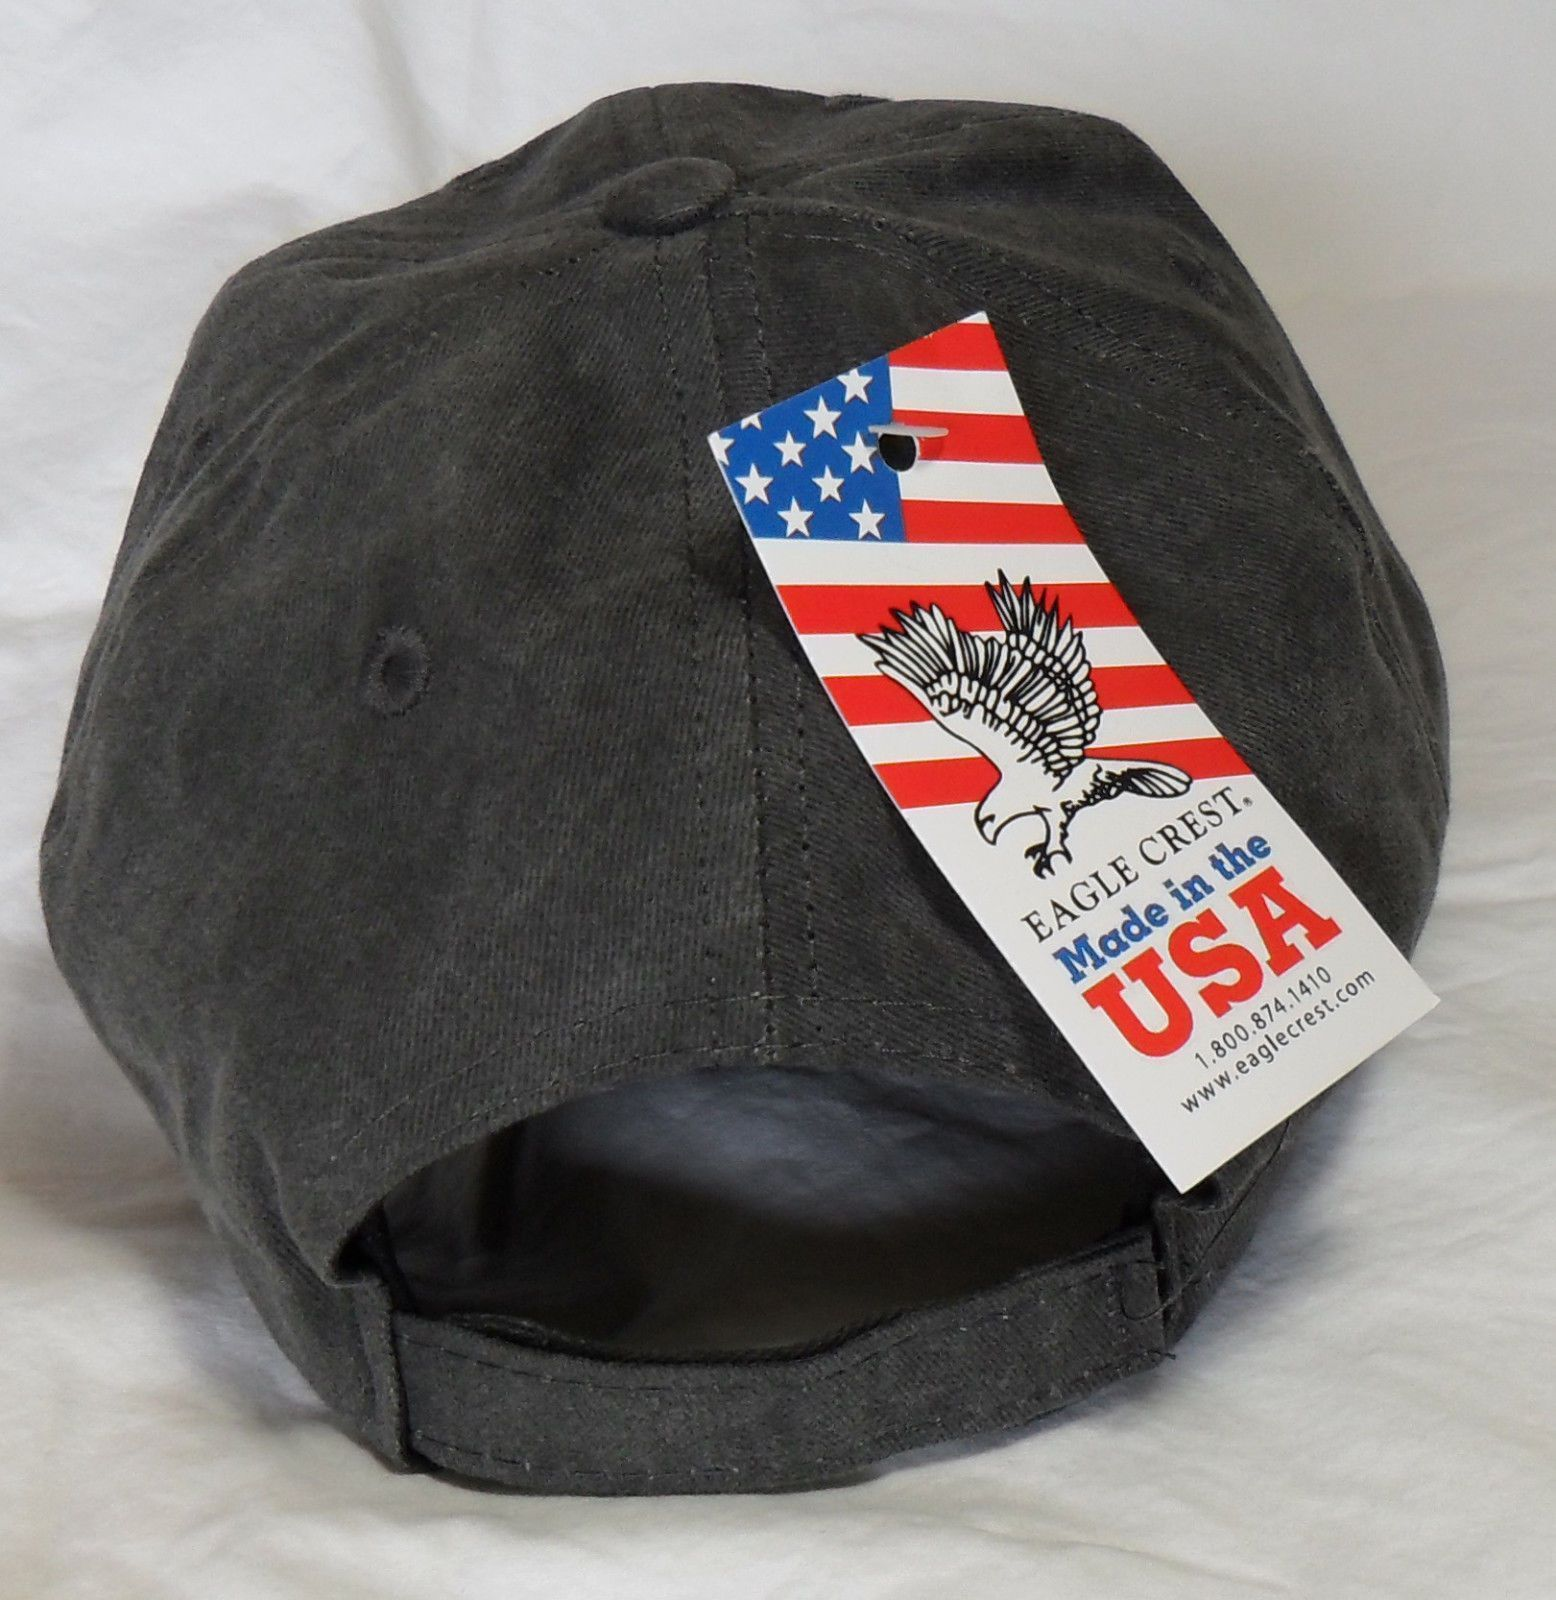 US ARMY 82ND AIRBORNE Made In USA Military Hat Baseball Cap